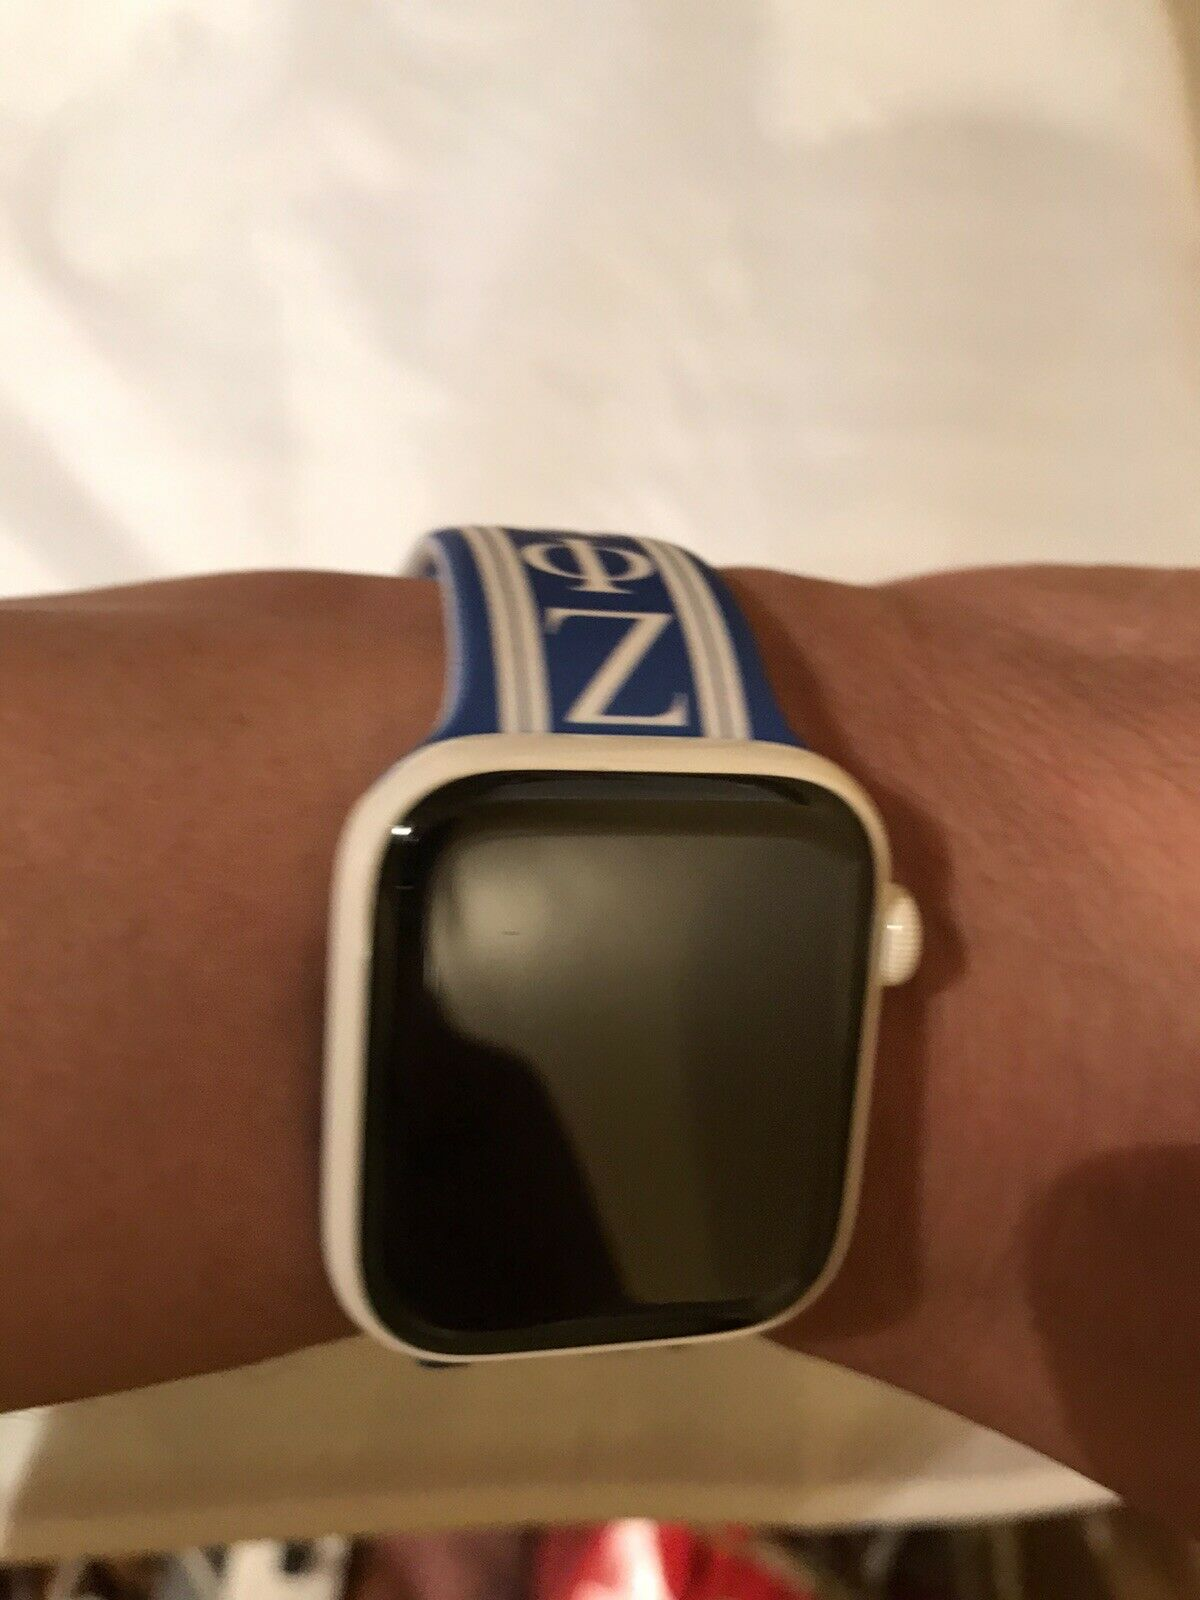 Zeta Phi Beta Apple Watch Band Size 42/44